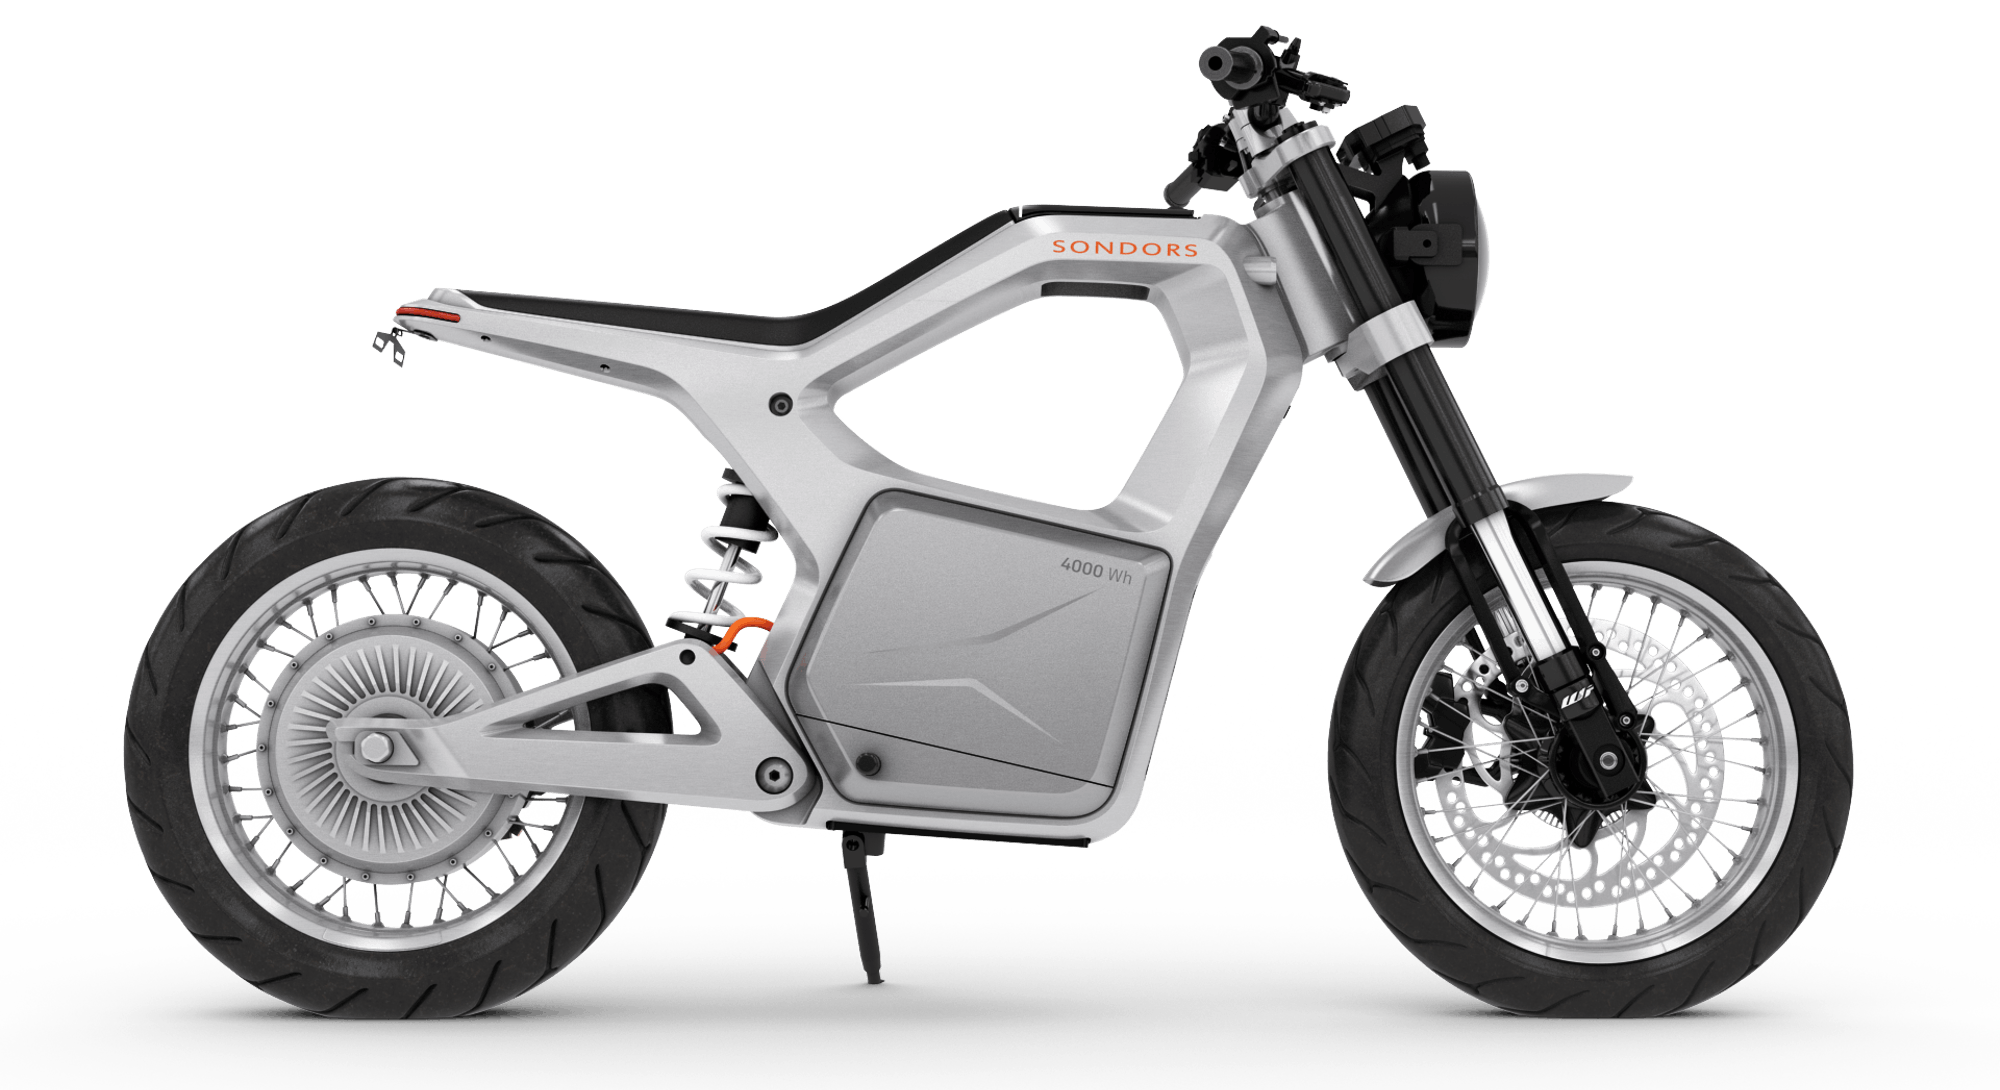 The Sondors Metacycle, an affordable electric motorcycle.